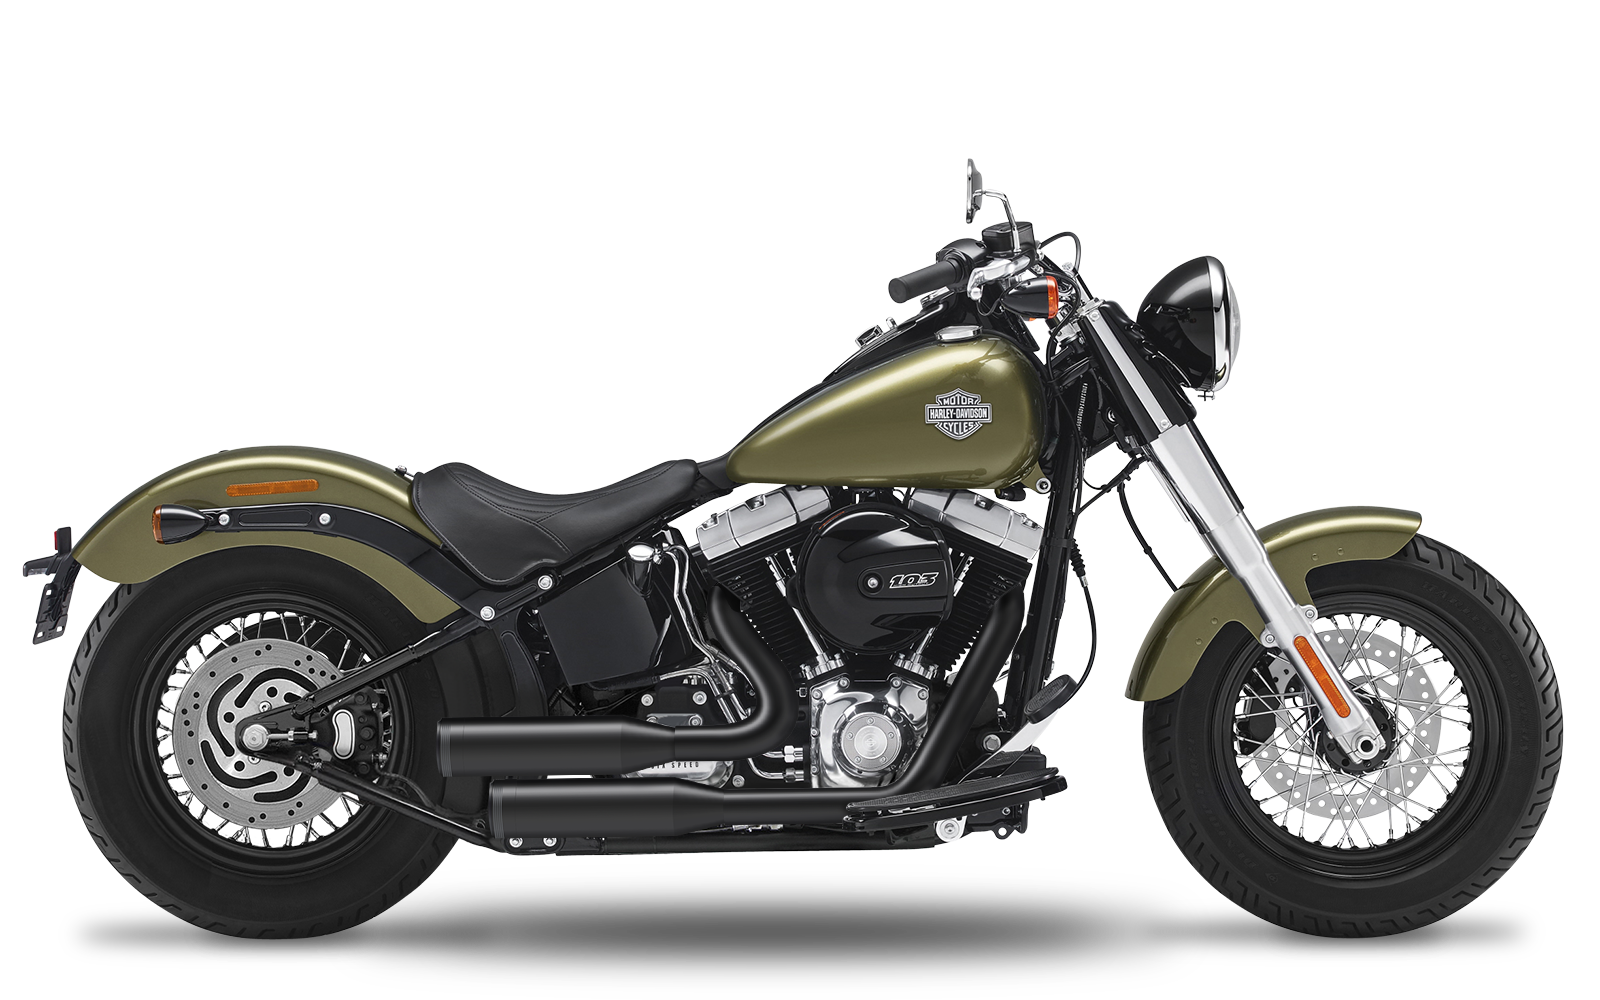 Softail - Slim S - TC110 - 2016-2017 - Complete systems adjustable